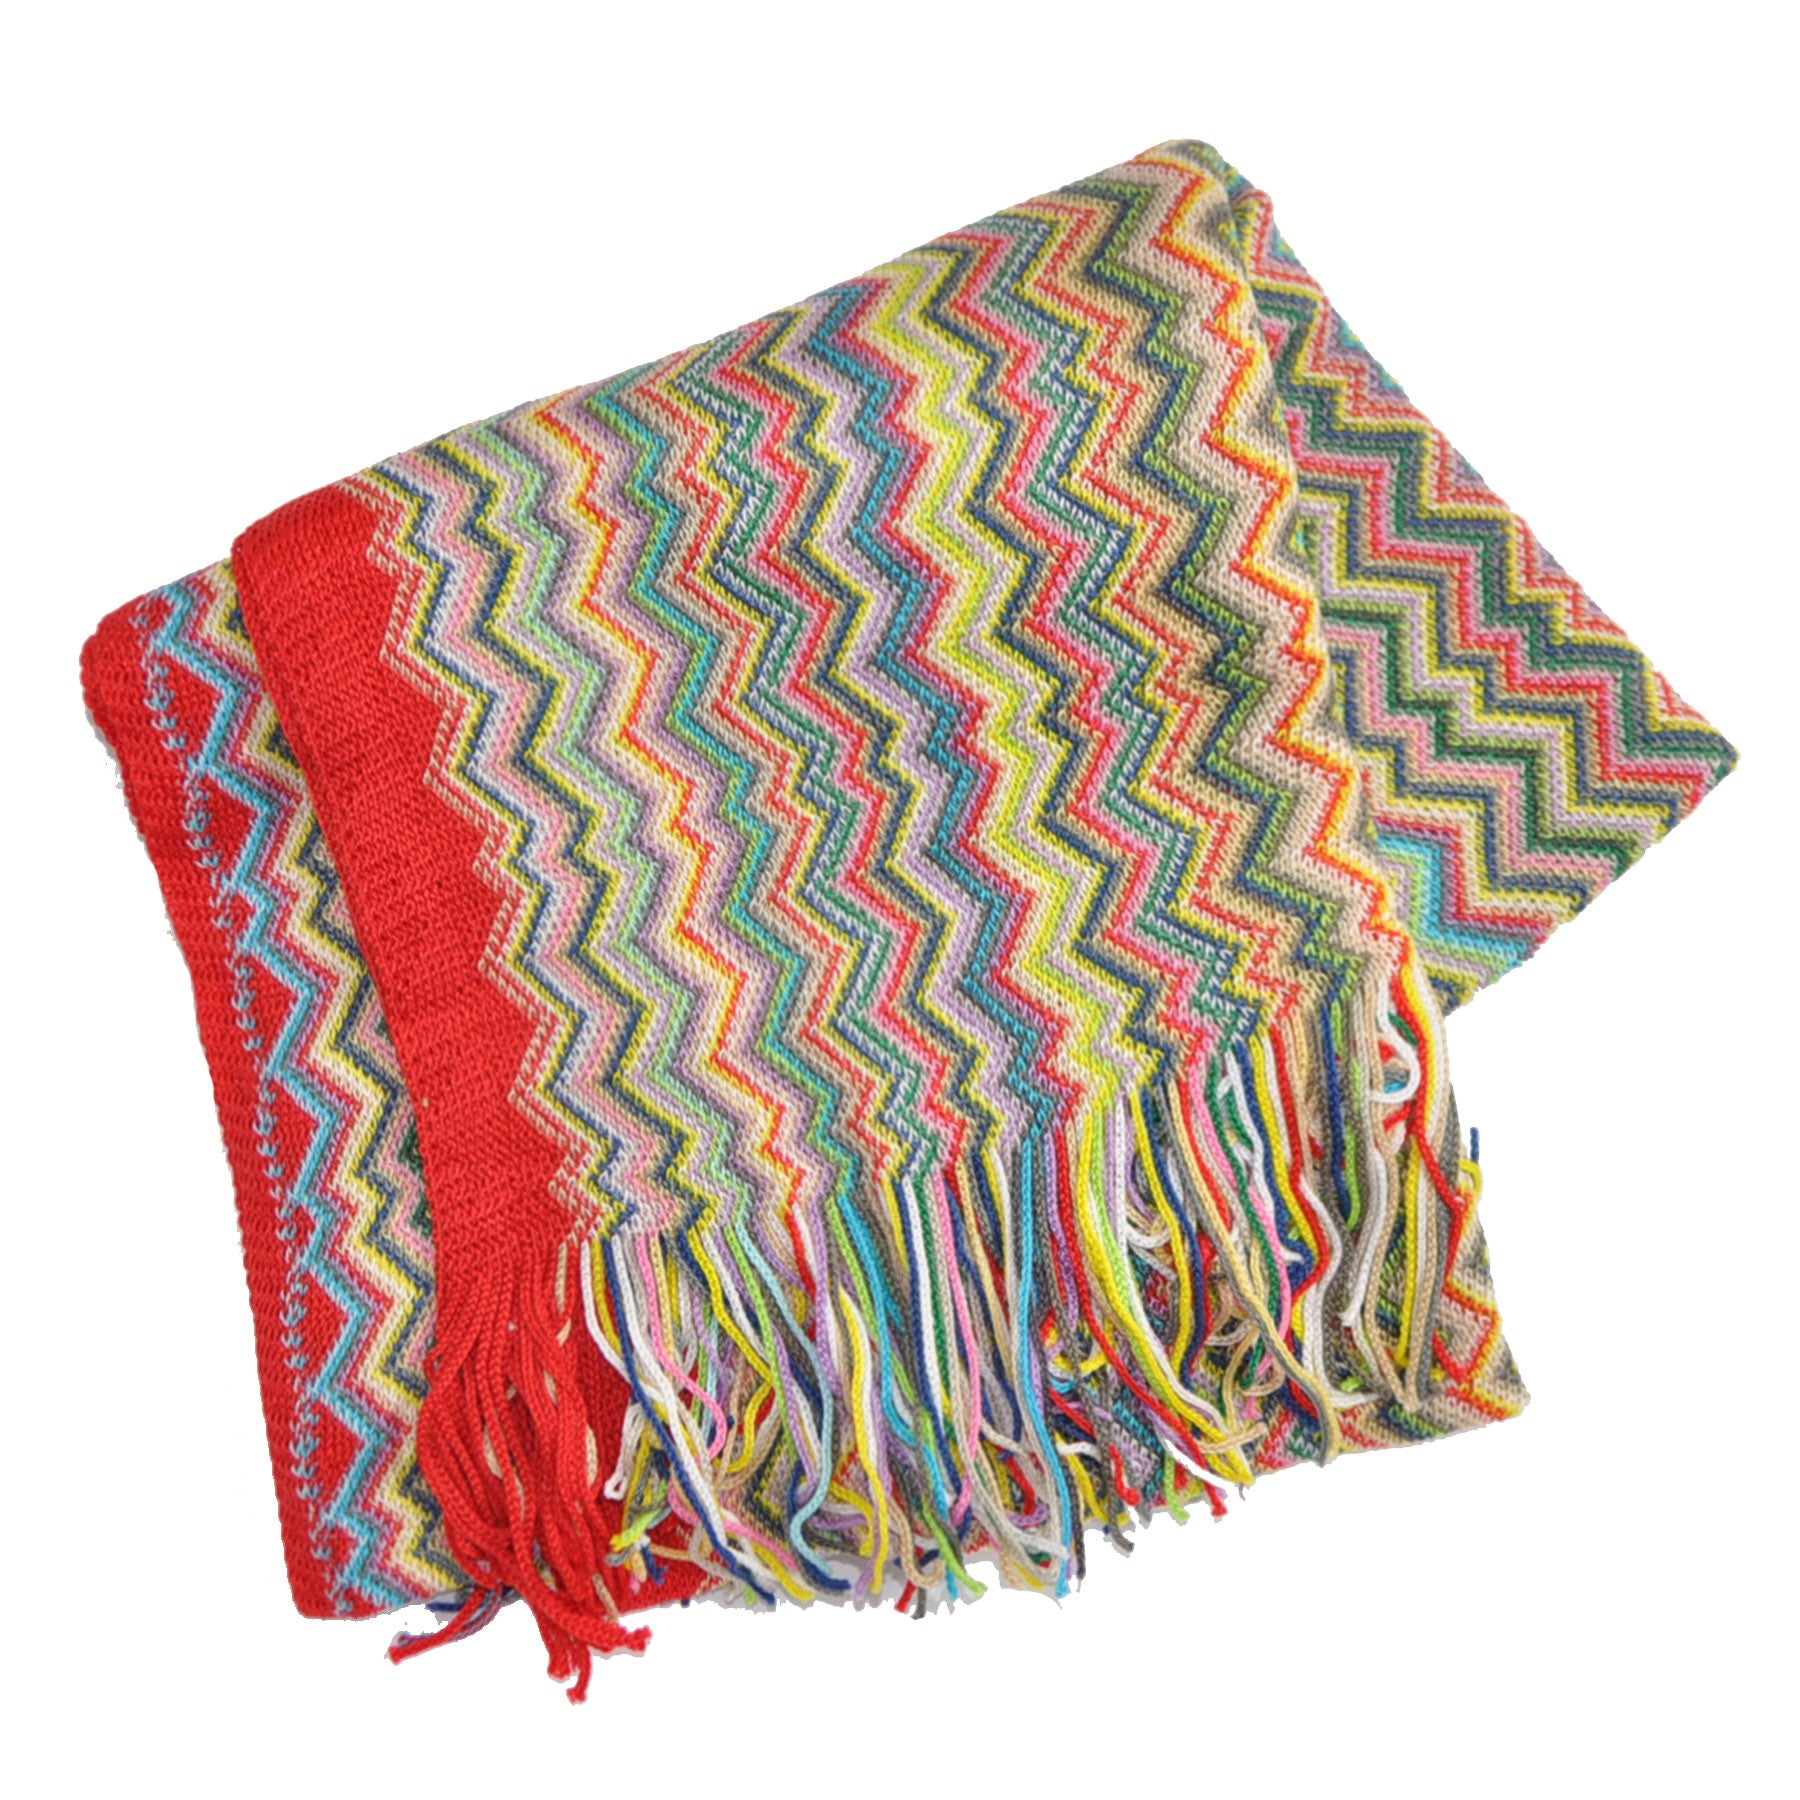 Missoni Scarf Chevron Design Cotton Shawl